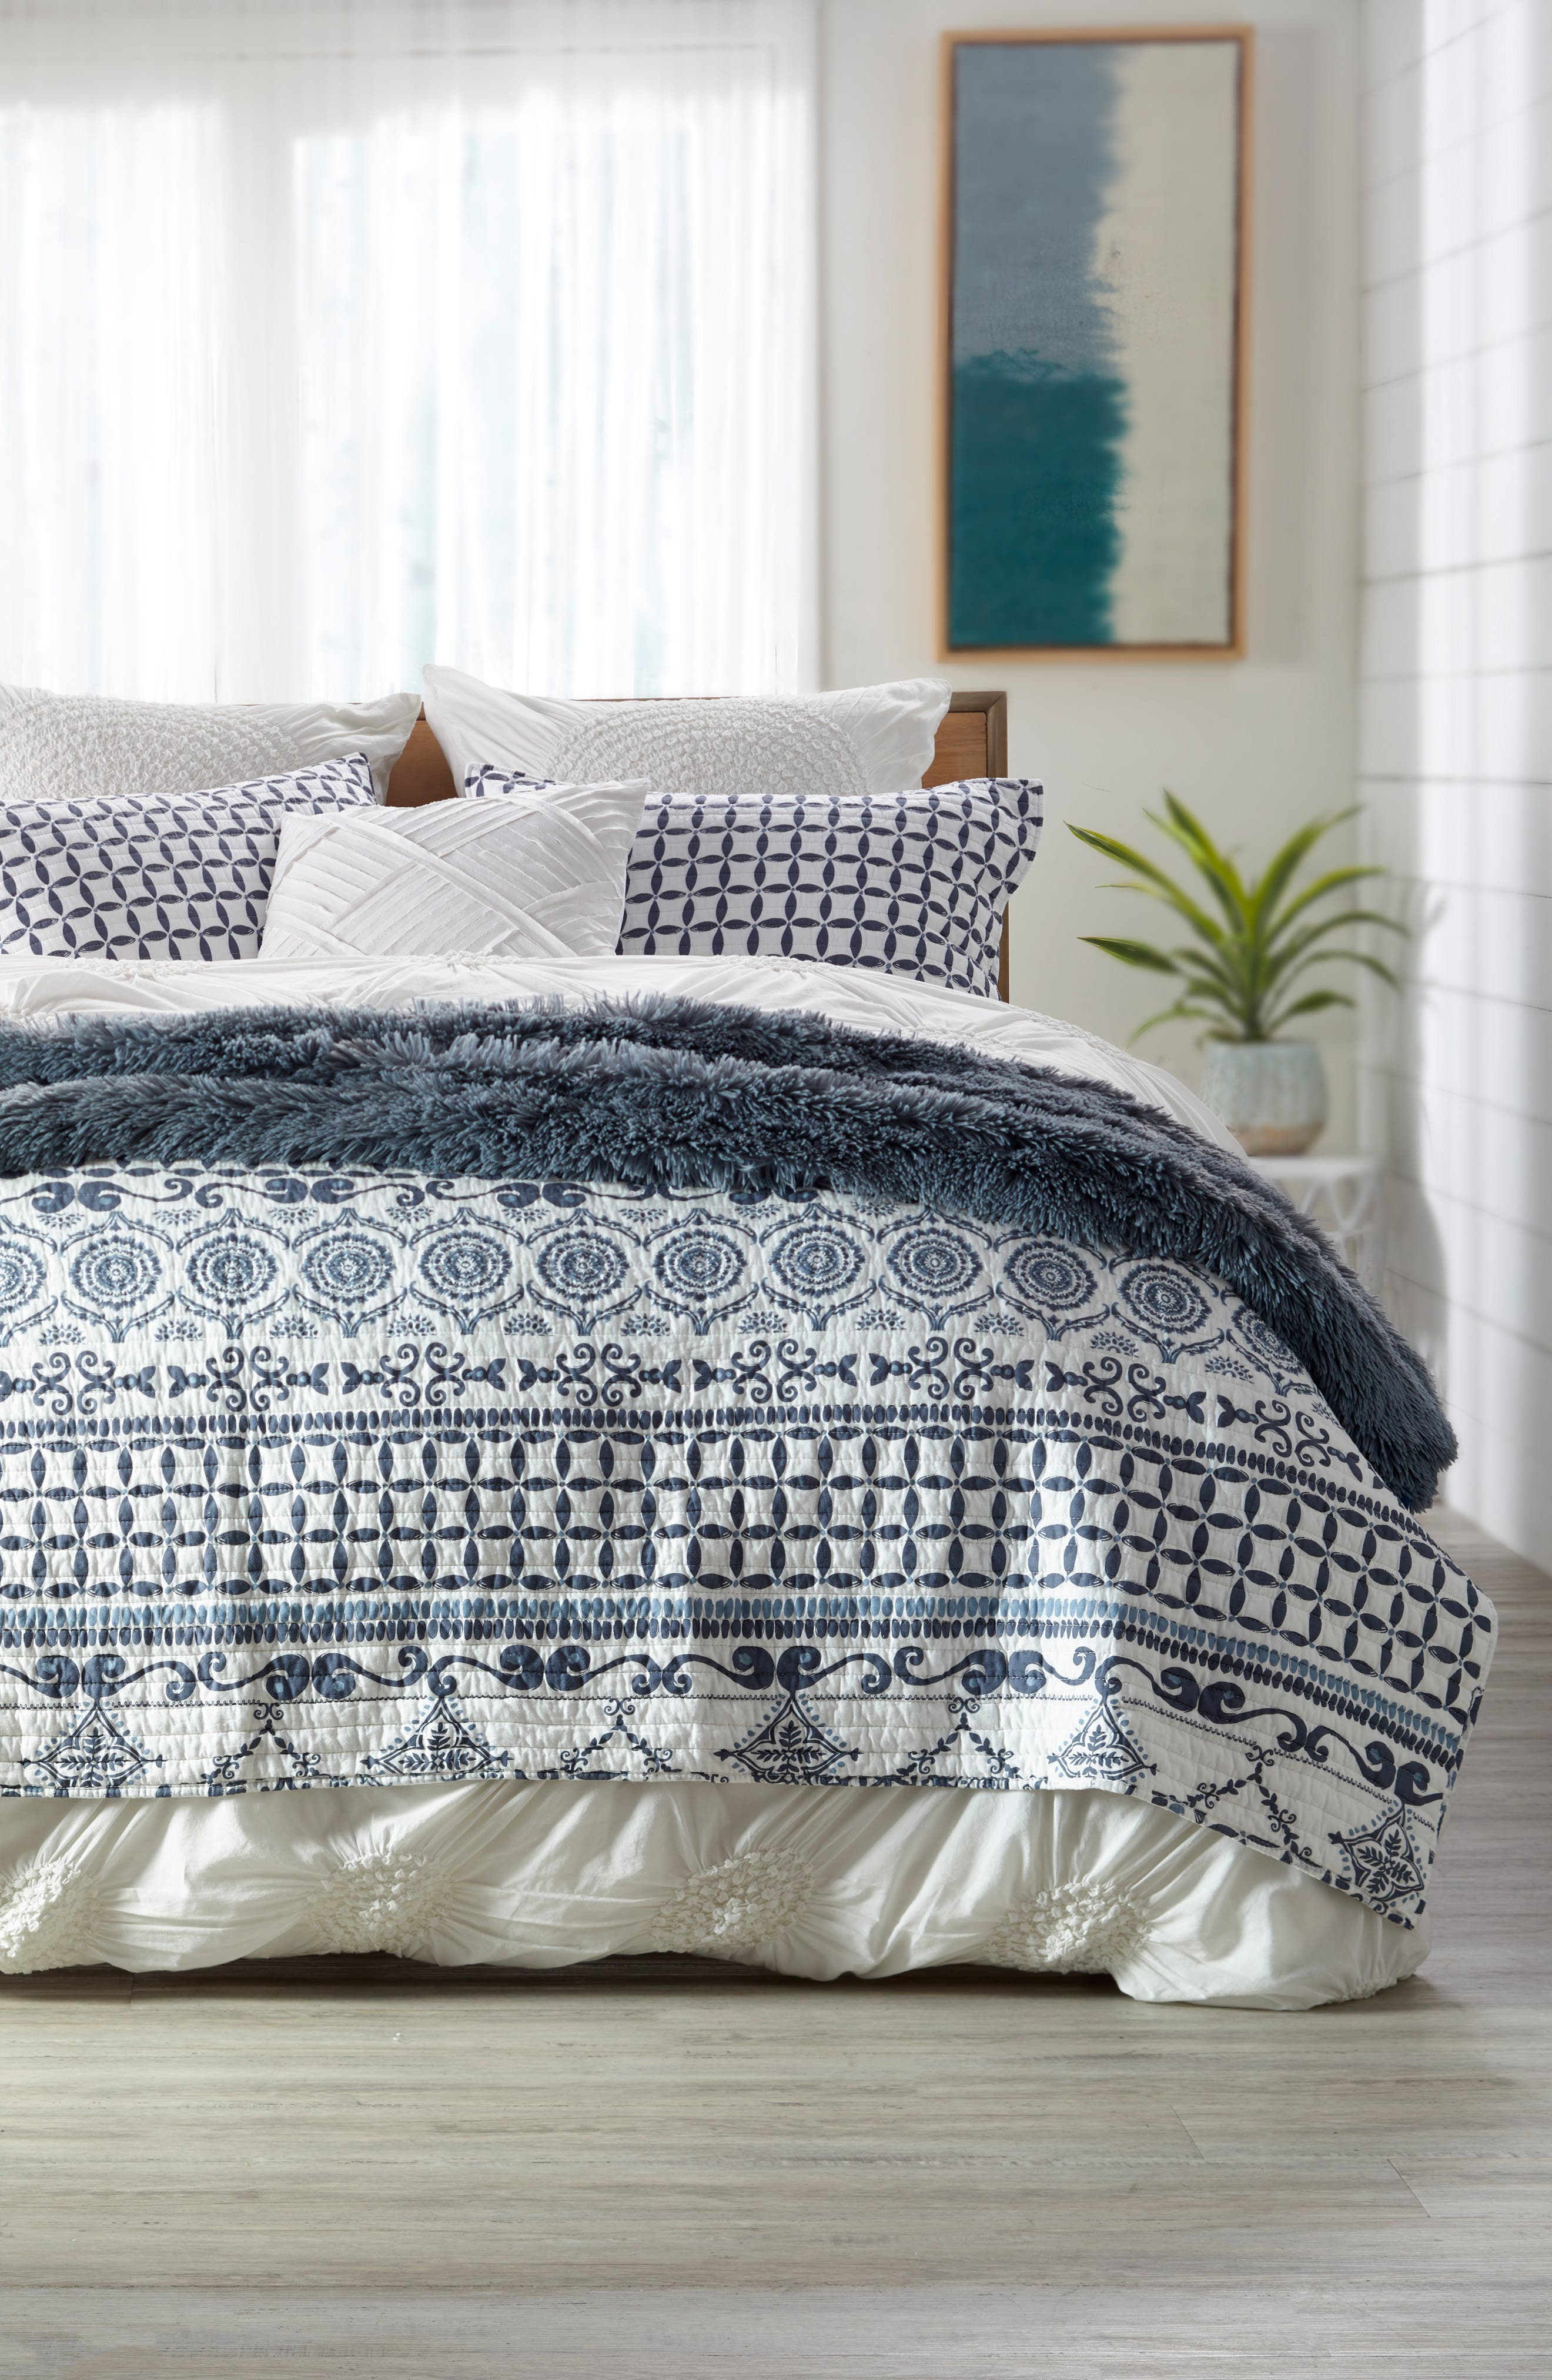 image product comforter rack nordstrom shop down white bed queen bedding of alternative